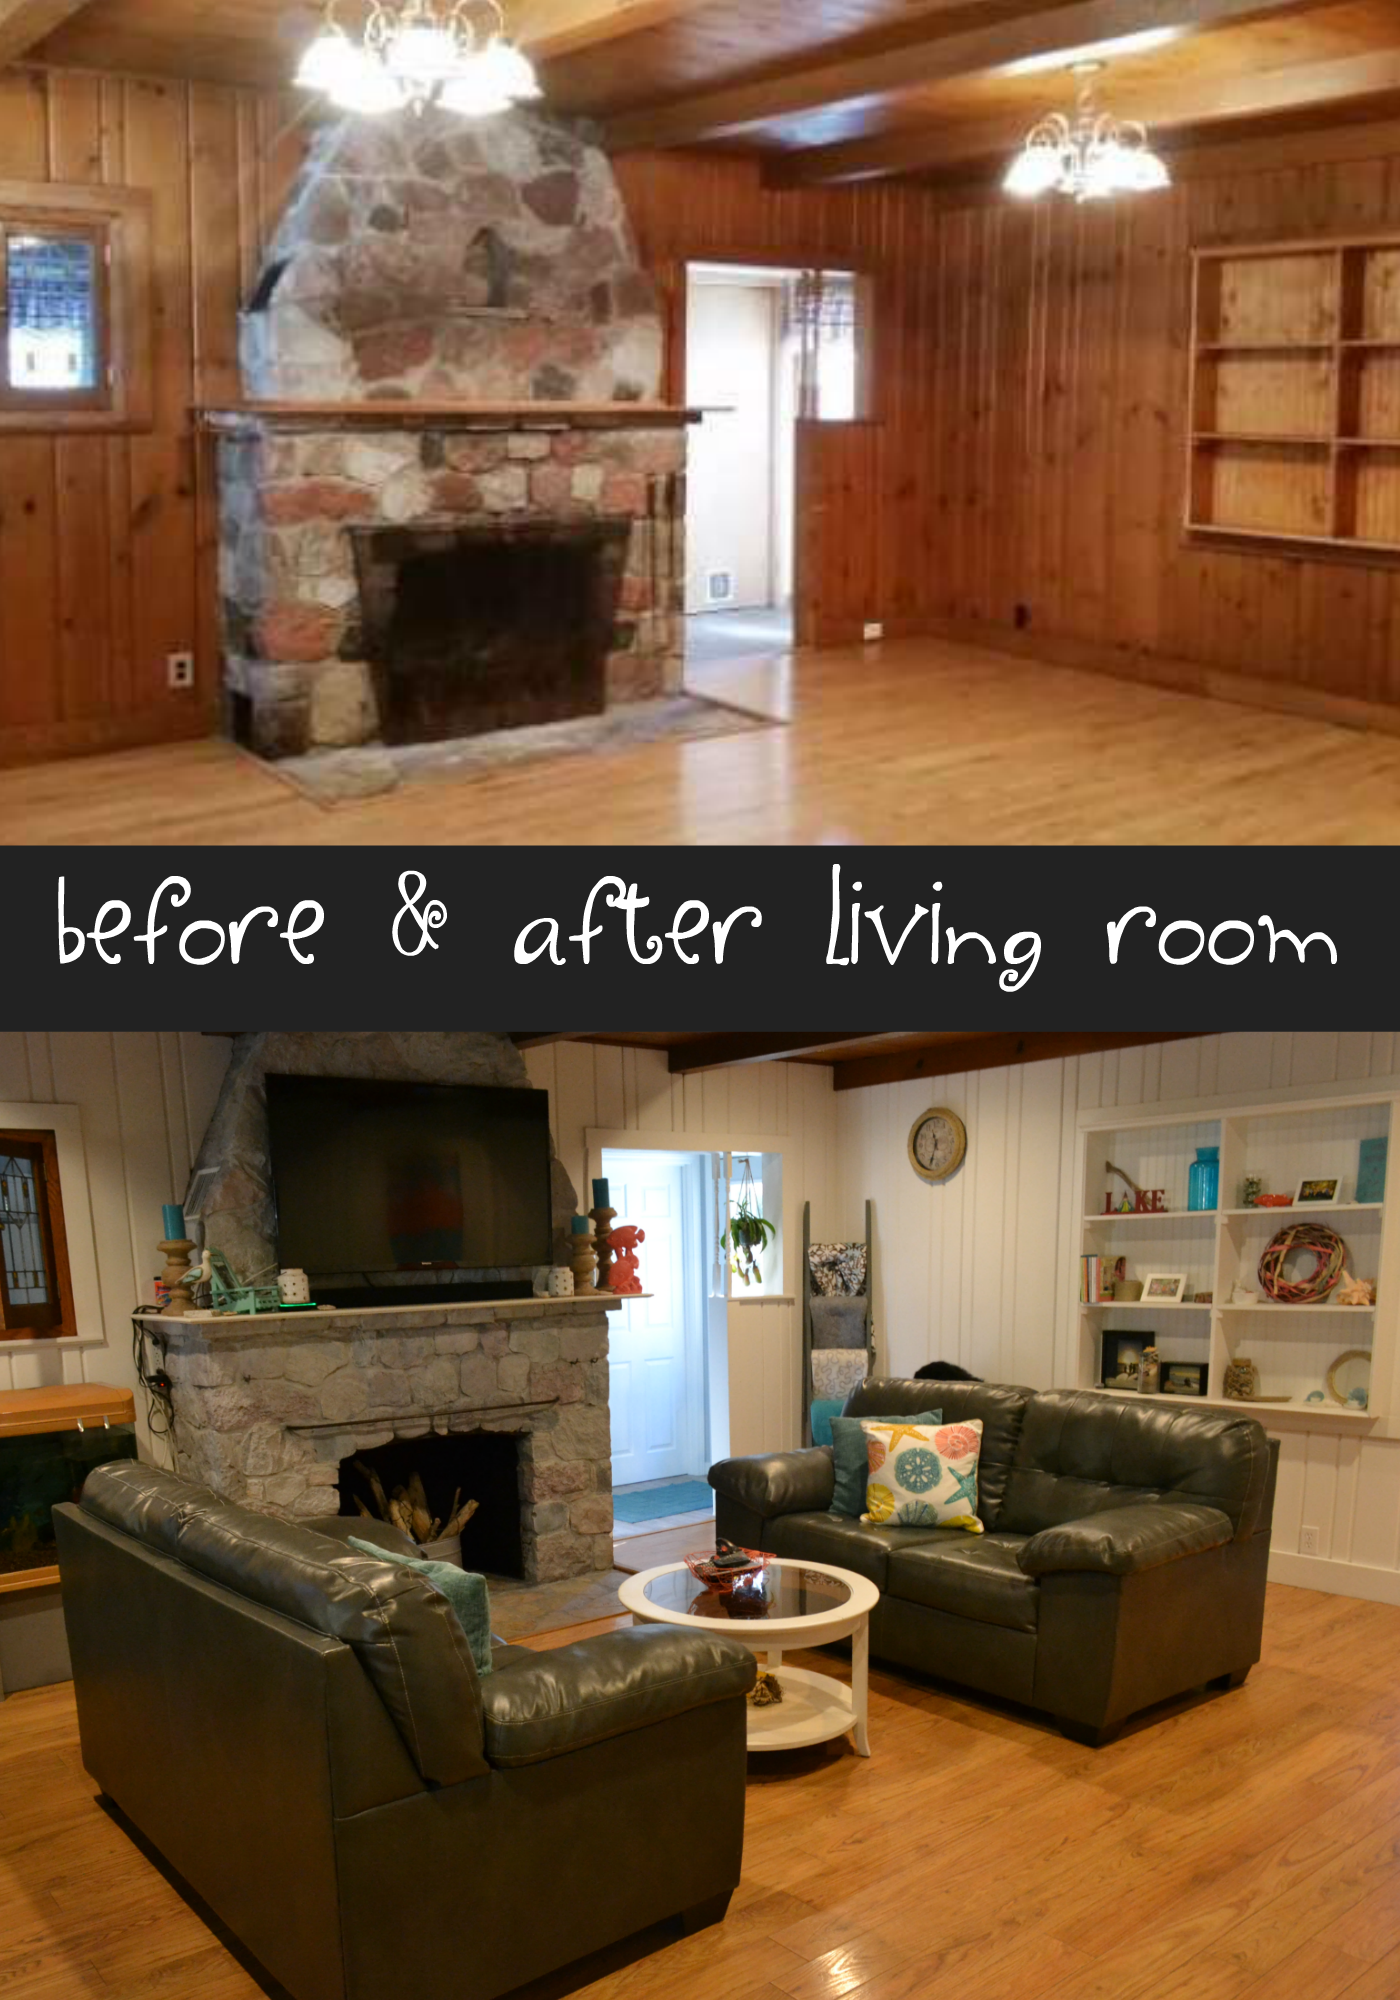 Before And After Living Room Remodel Coastal Painted Wood Paneling Floors A White Washed Stone Fireplace Beautiful Www